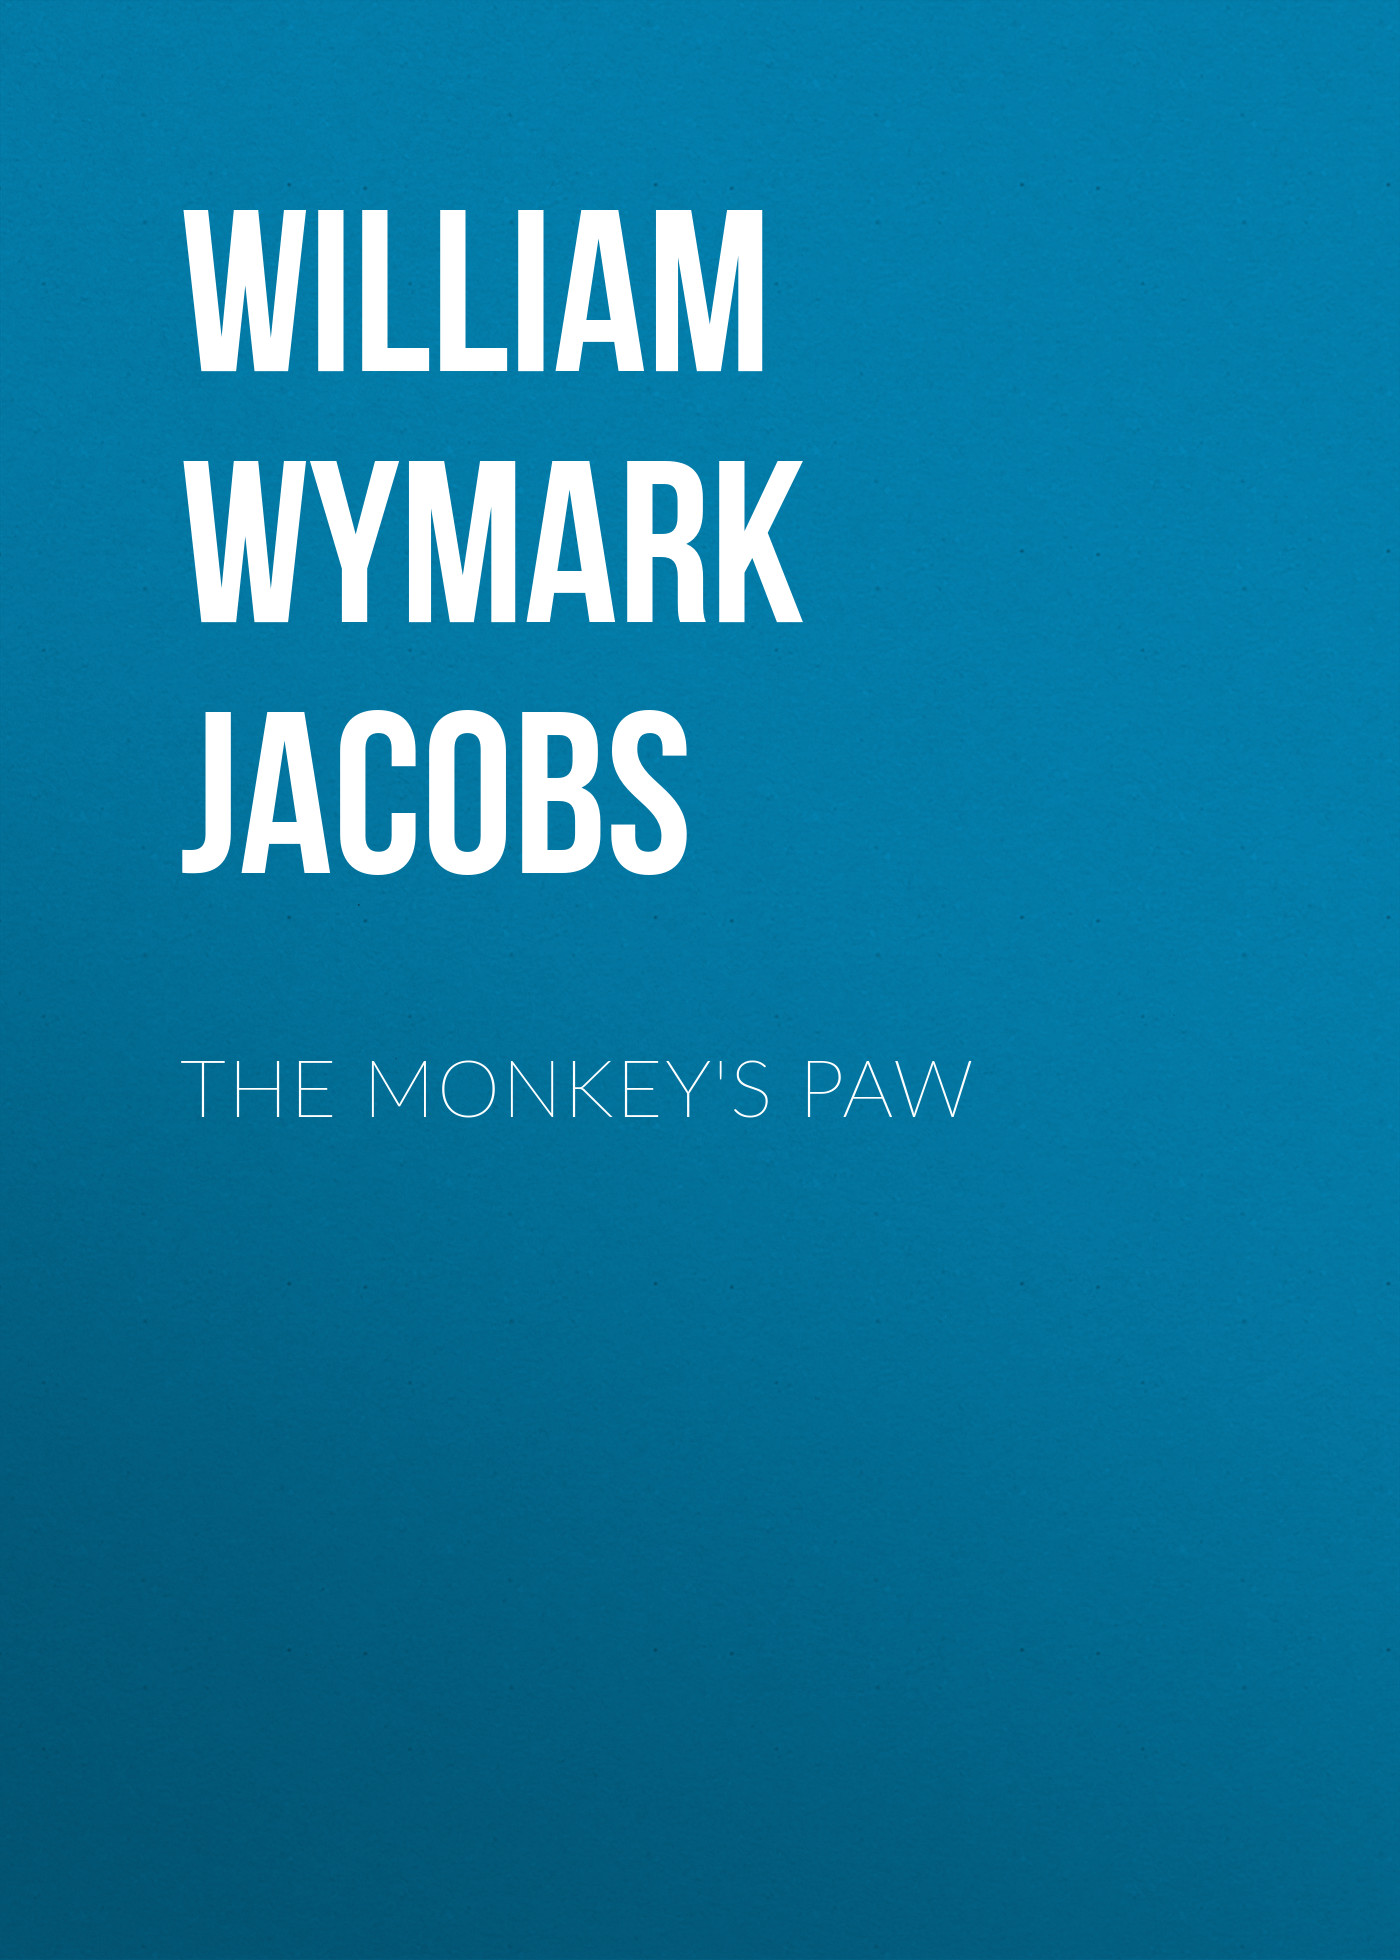 William Wymark Jacobs The Monkey's Paw